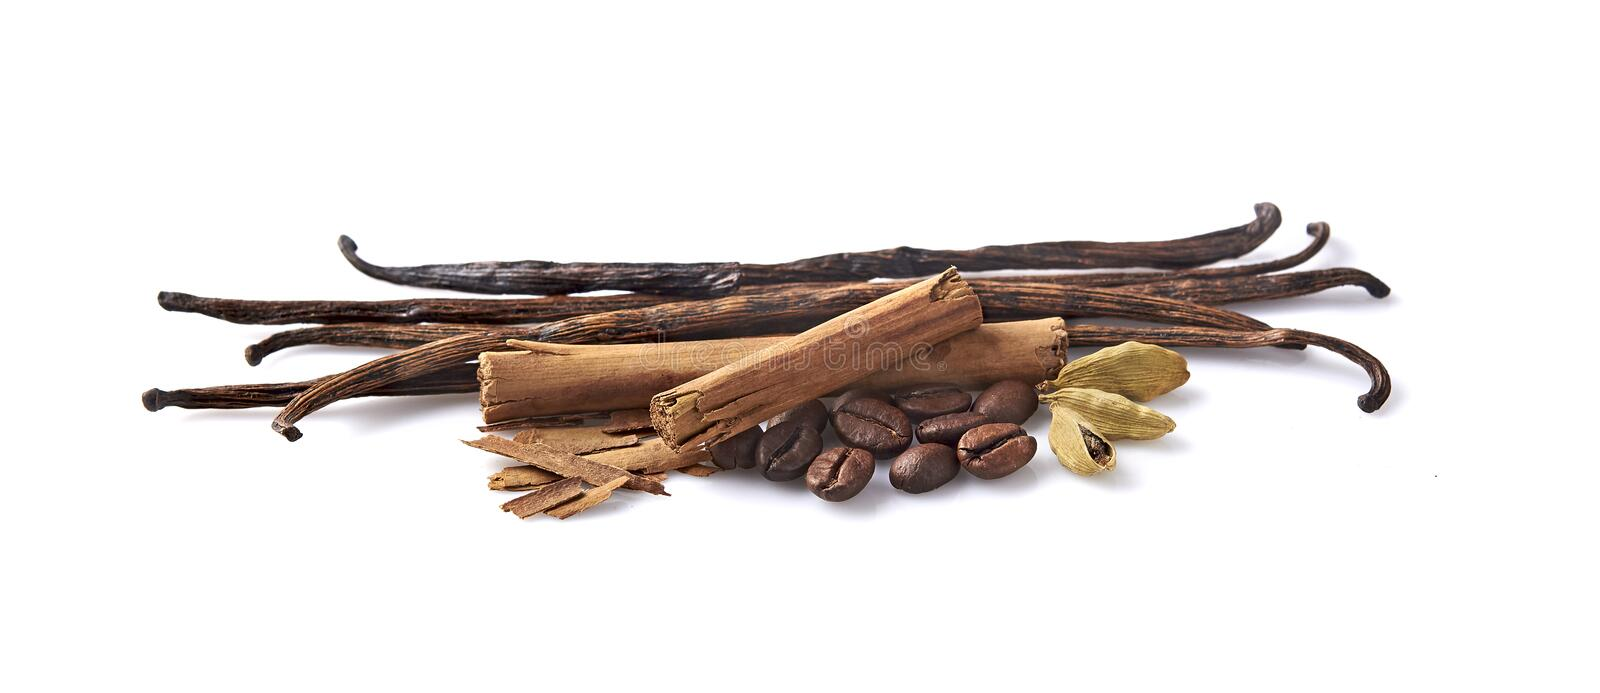 Vanilla, cinnamon, cardamom and coffee beans on white background. Spices  royalty free stock photo